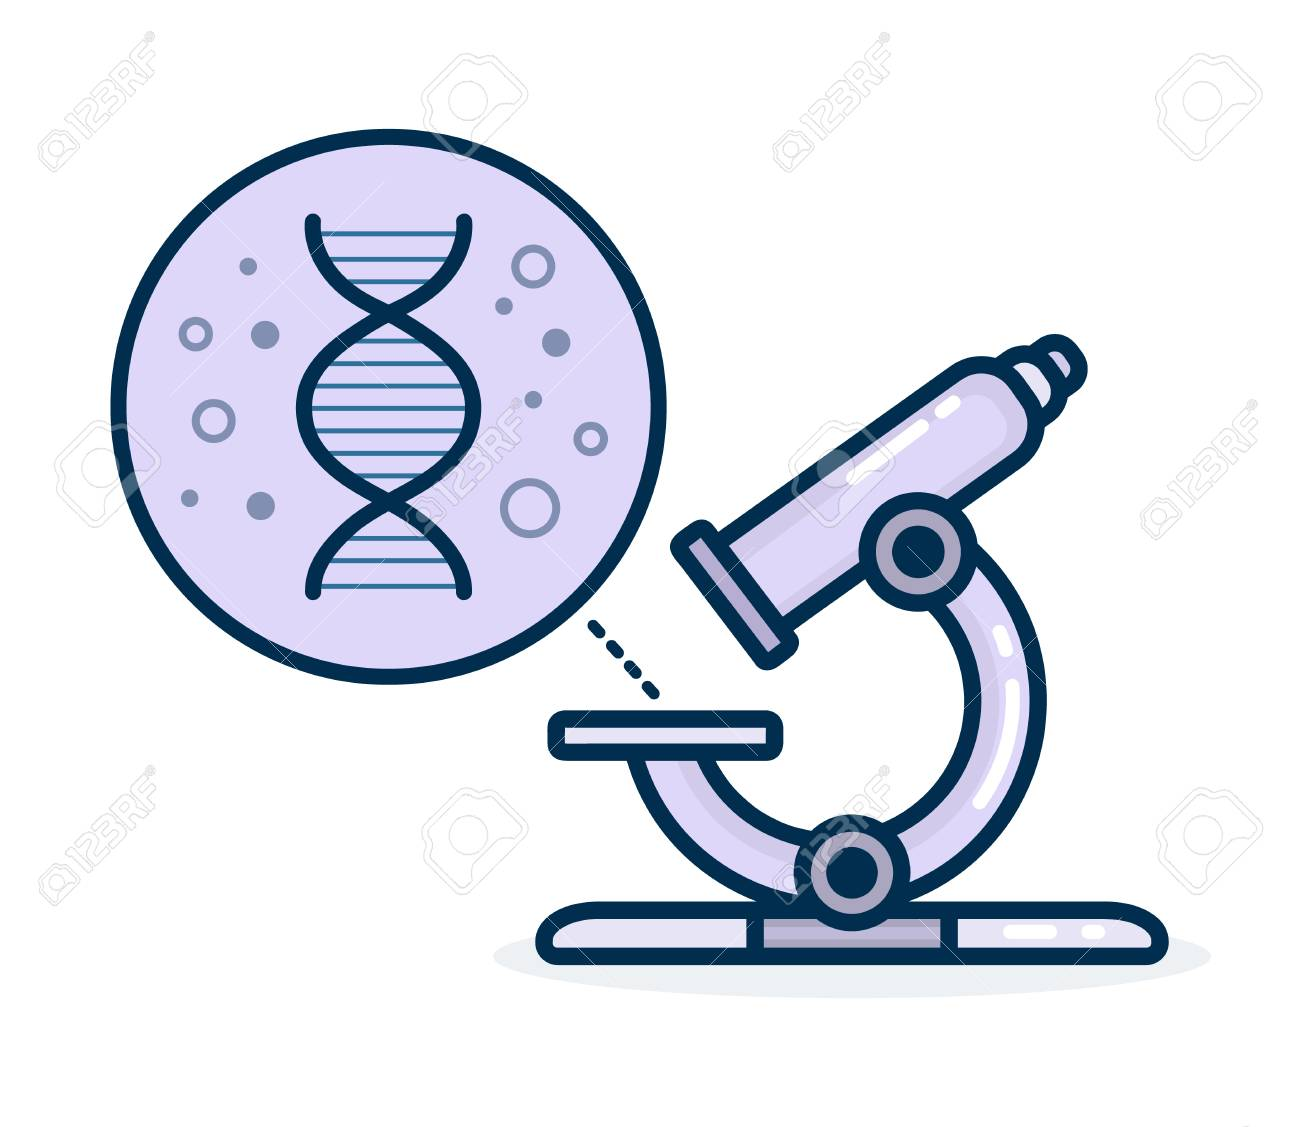 microscope increases dnk vector flat modern line style cartoon royalty free cliparts vectors and stock illustration image 89471027 microscope increases dnk vector flat modern line style cartoon